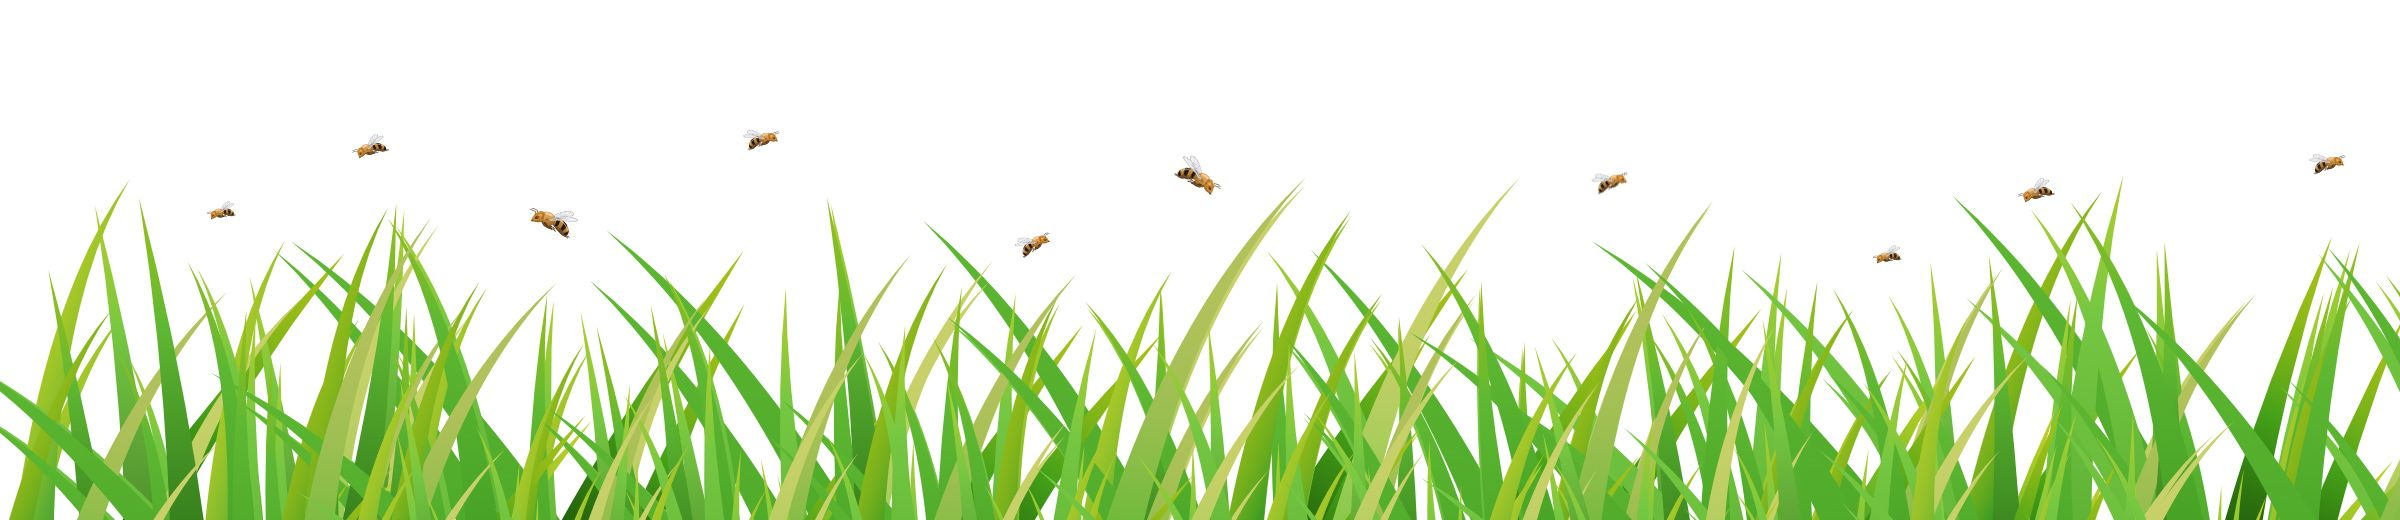 Bees Flying Above Grass Graphic